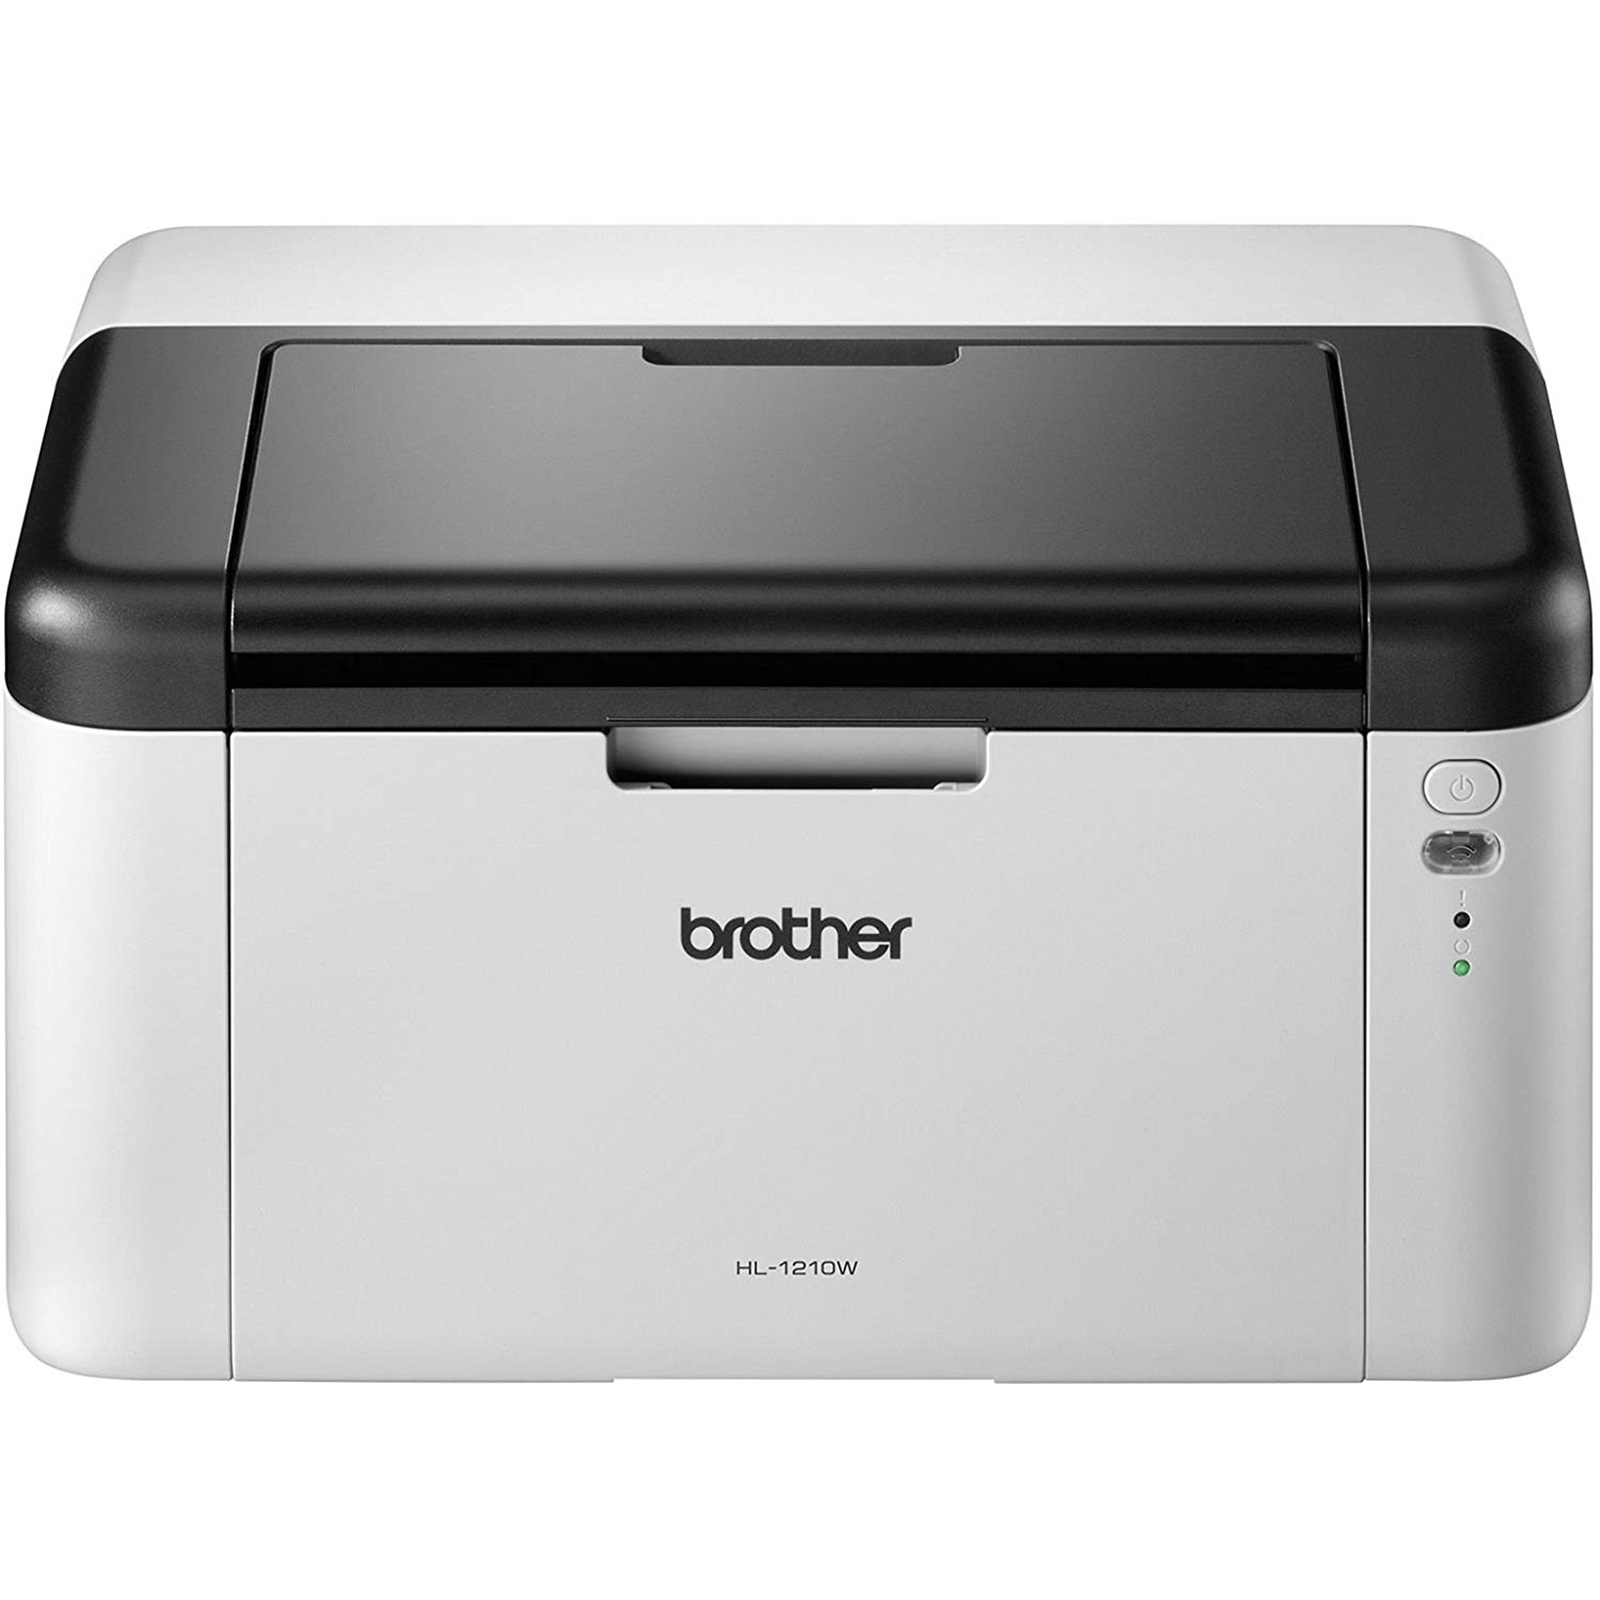 brother dcp 7055 printer driver for windows 10